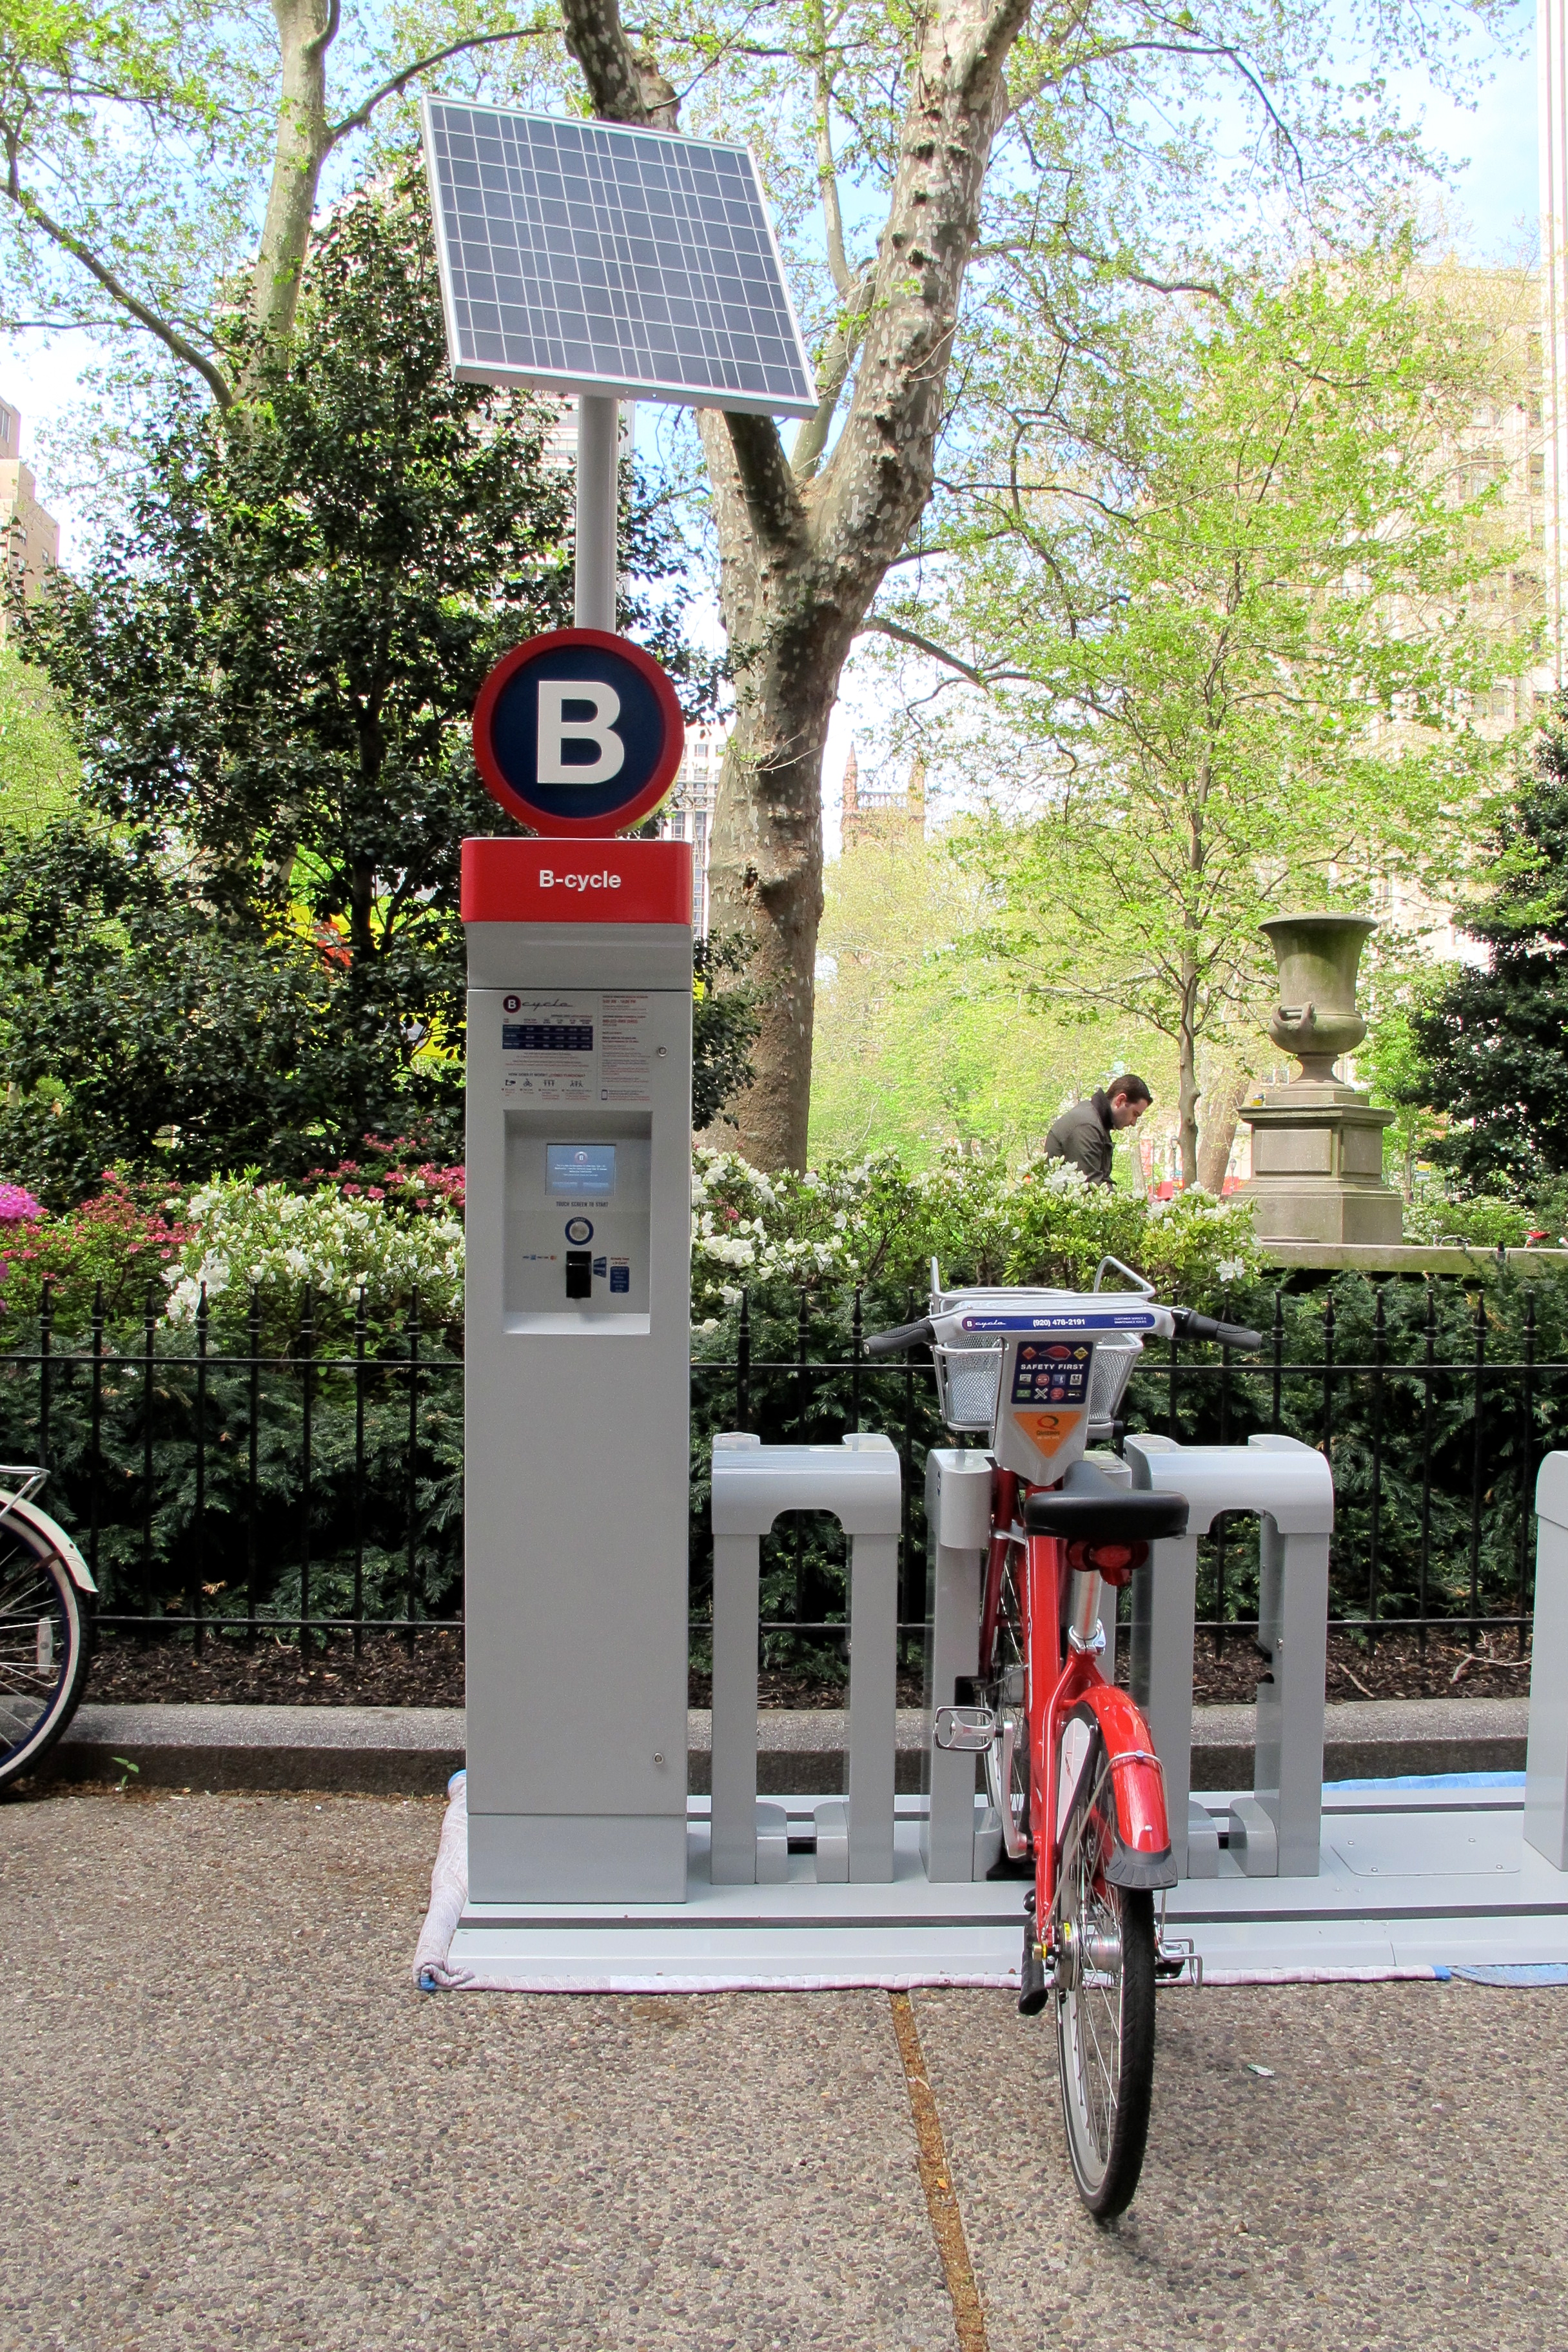 A B-cycle station